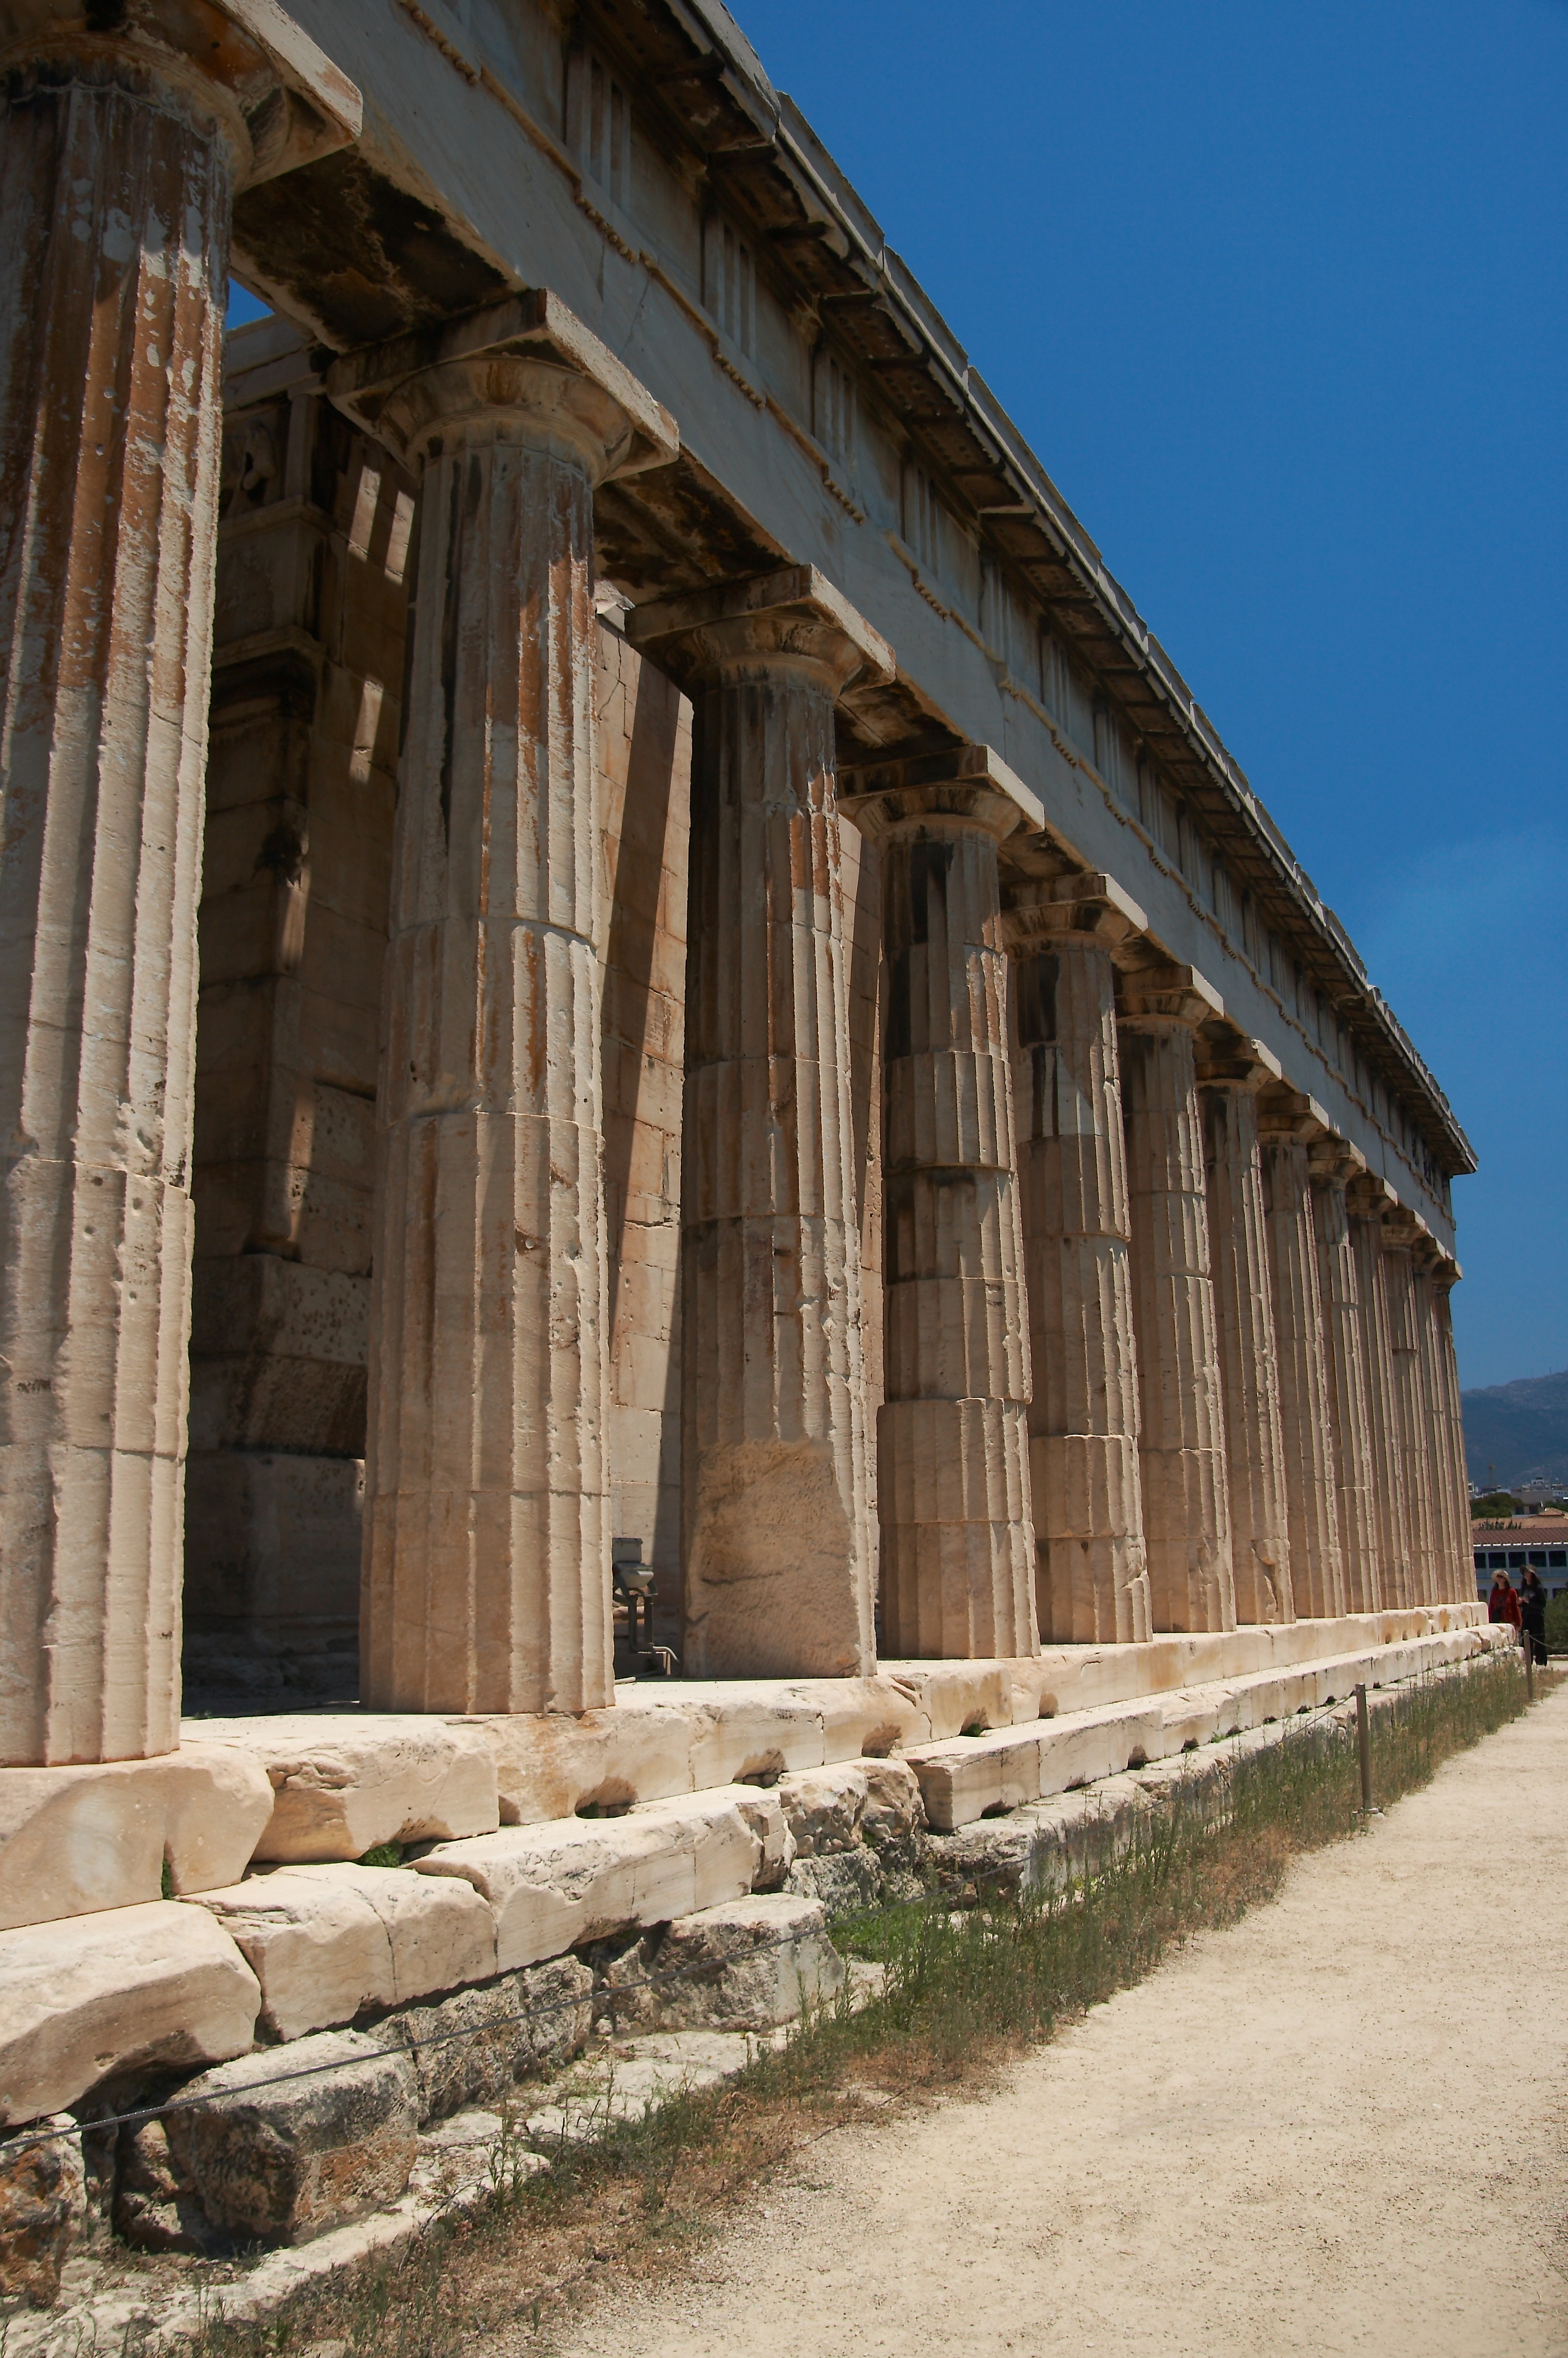 File:Temple of Hephaestus (South), Athens - 20070711.jpg ...